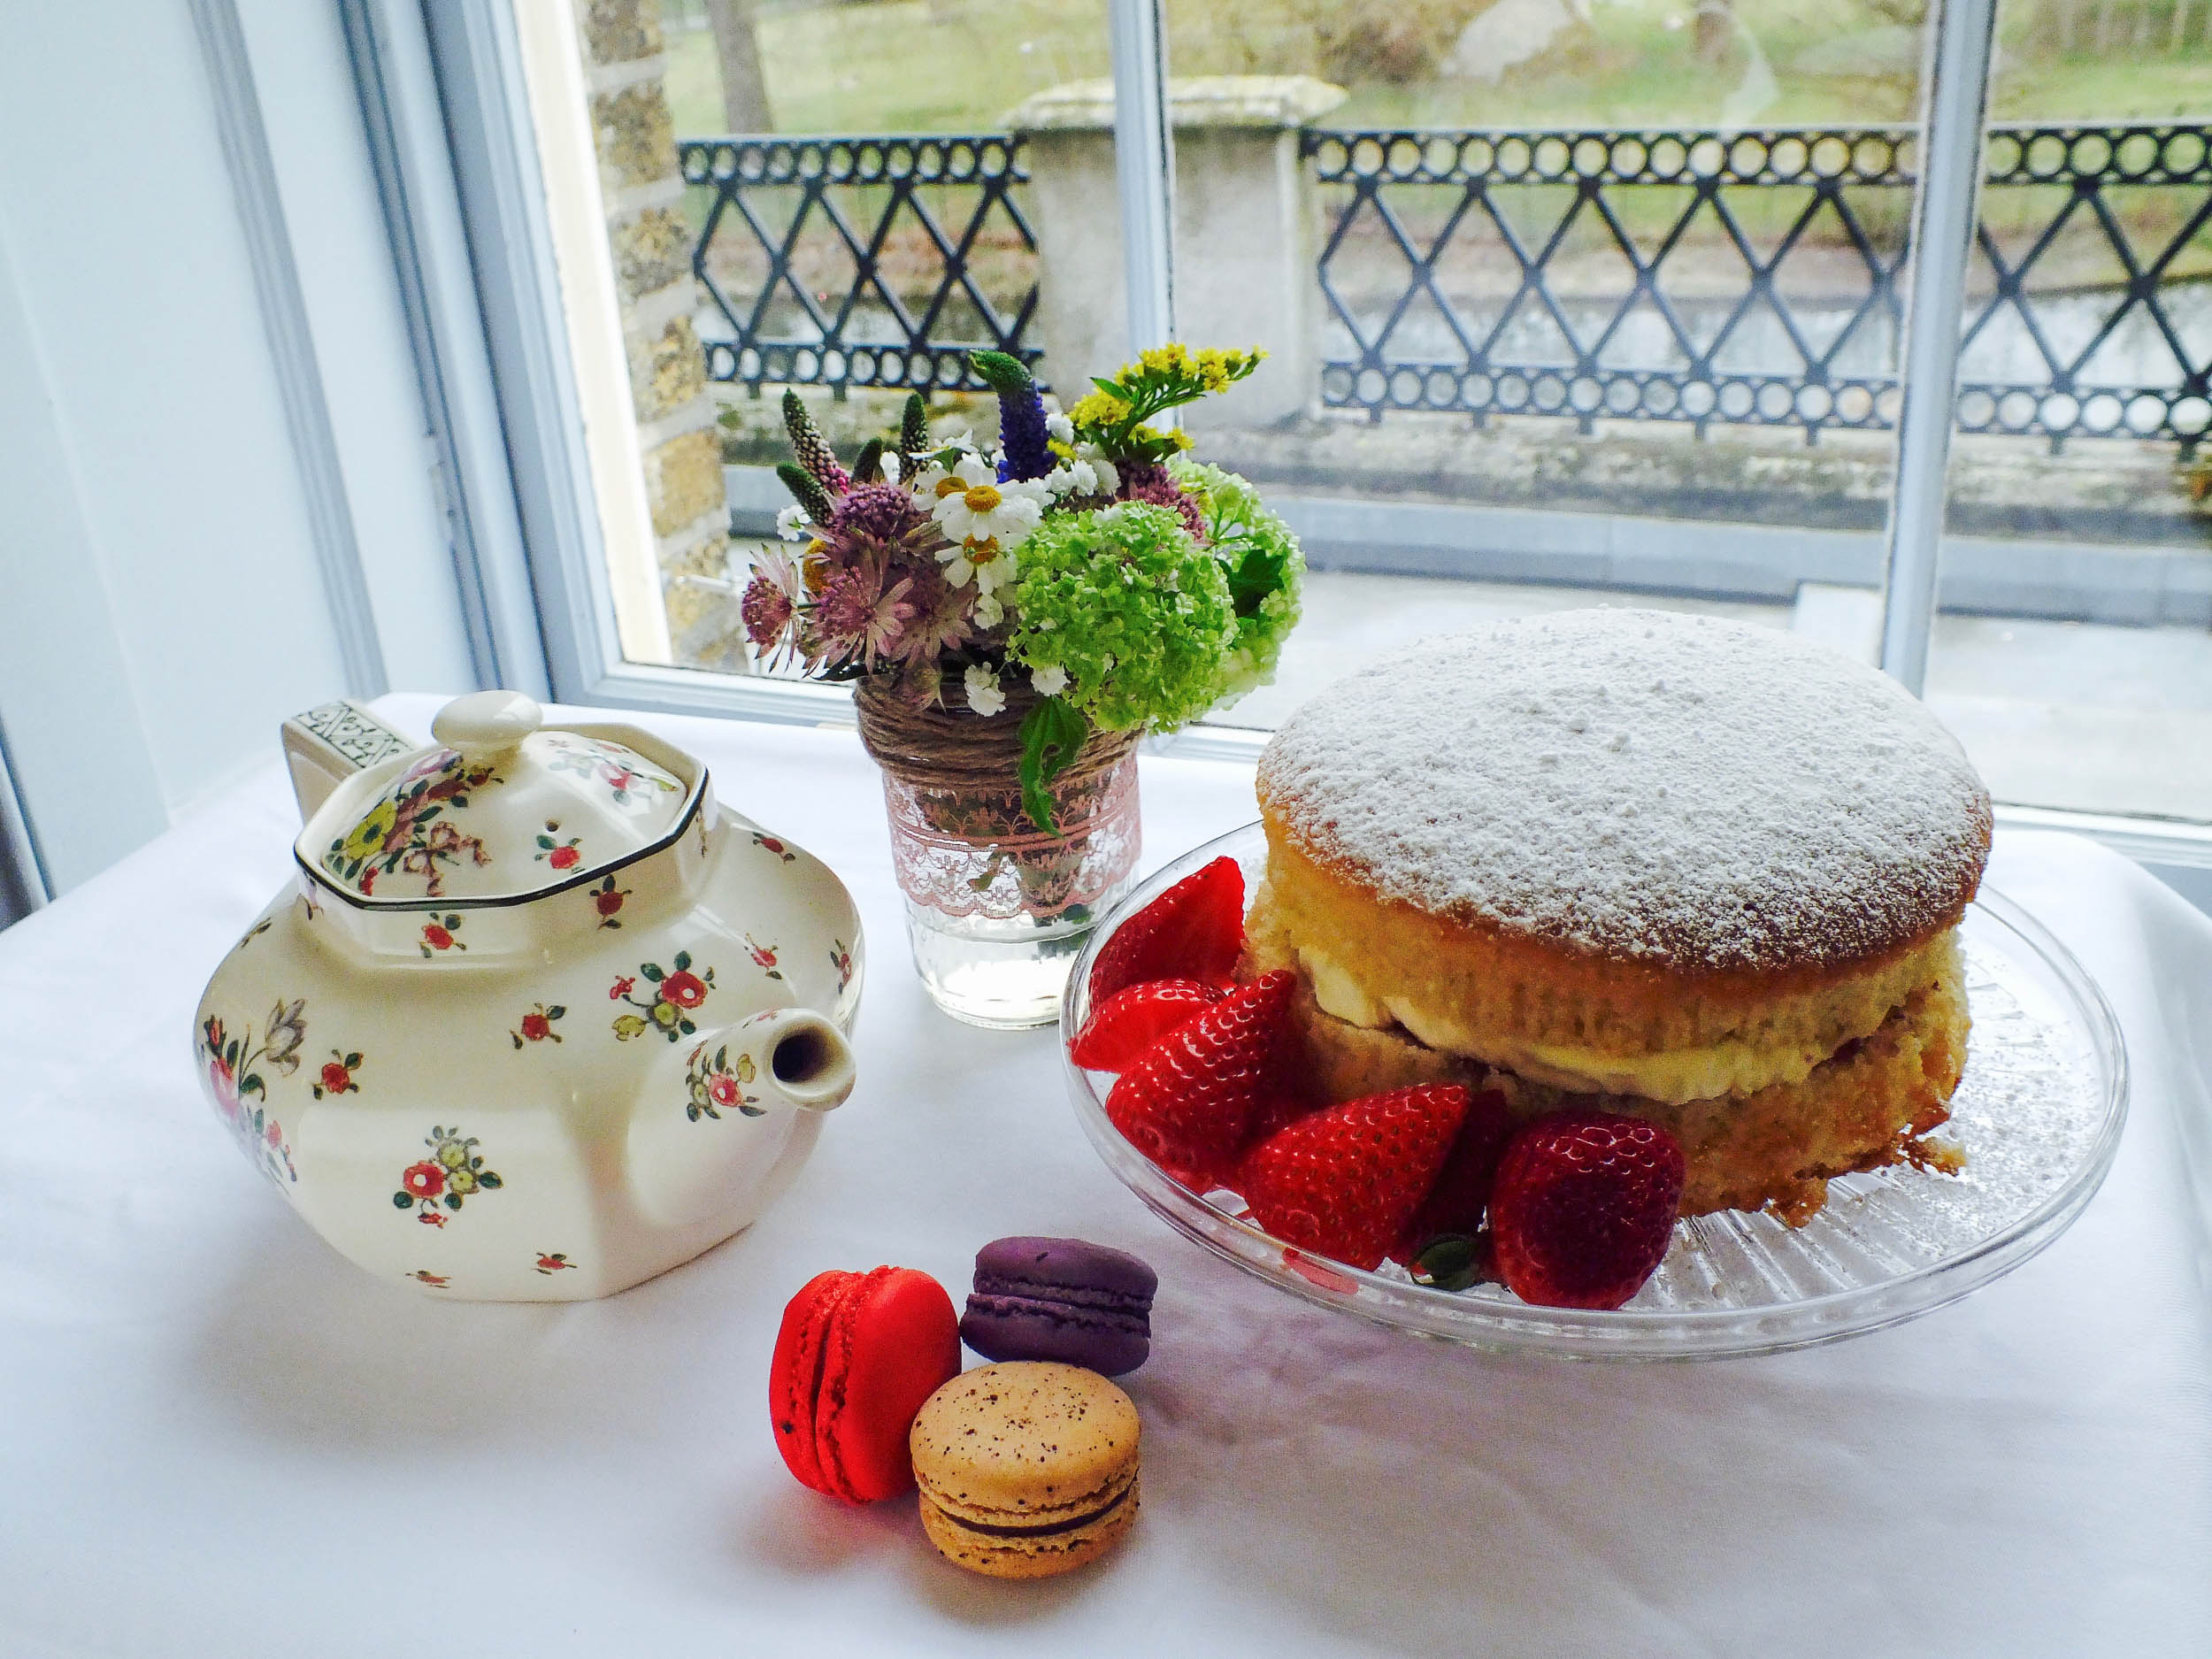 afternoon tea private catering london